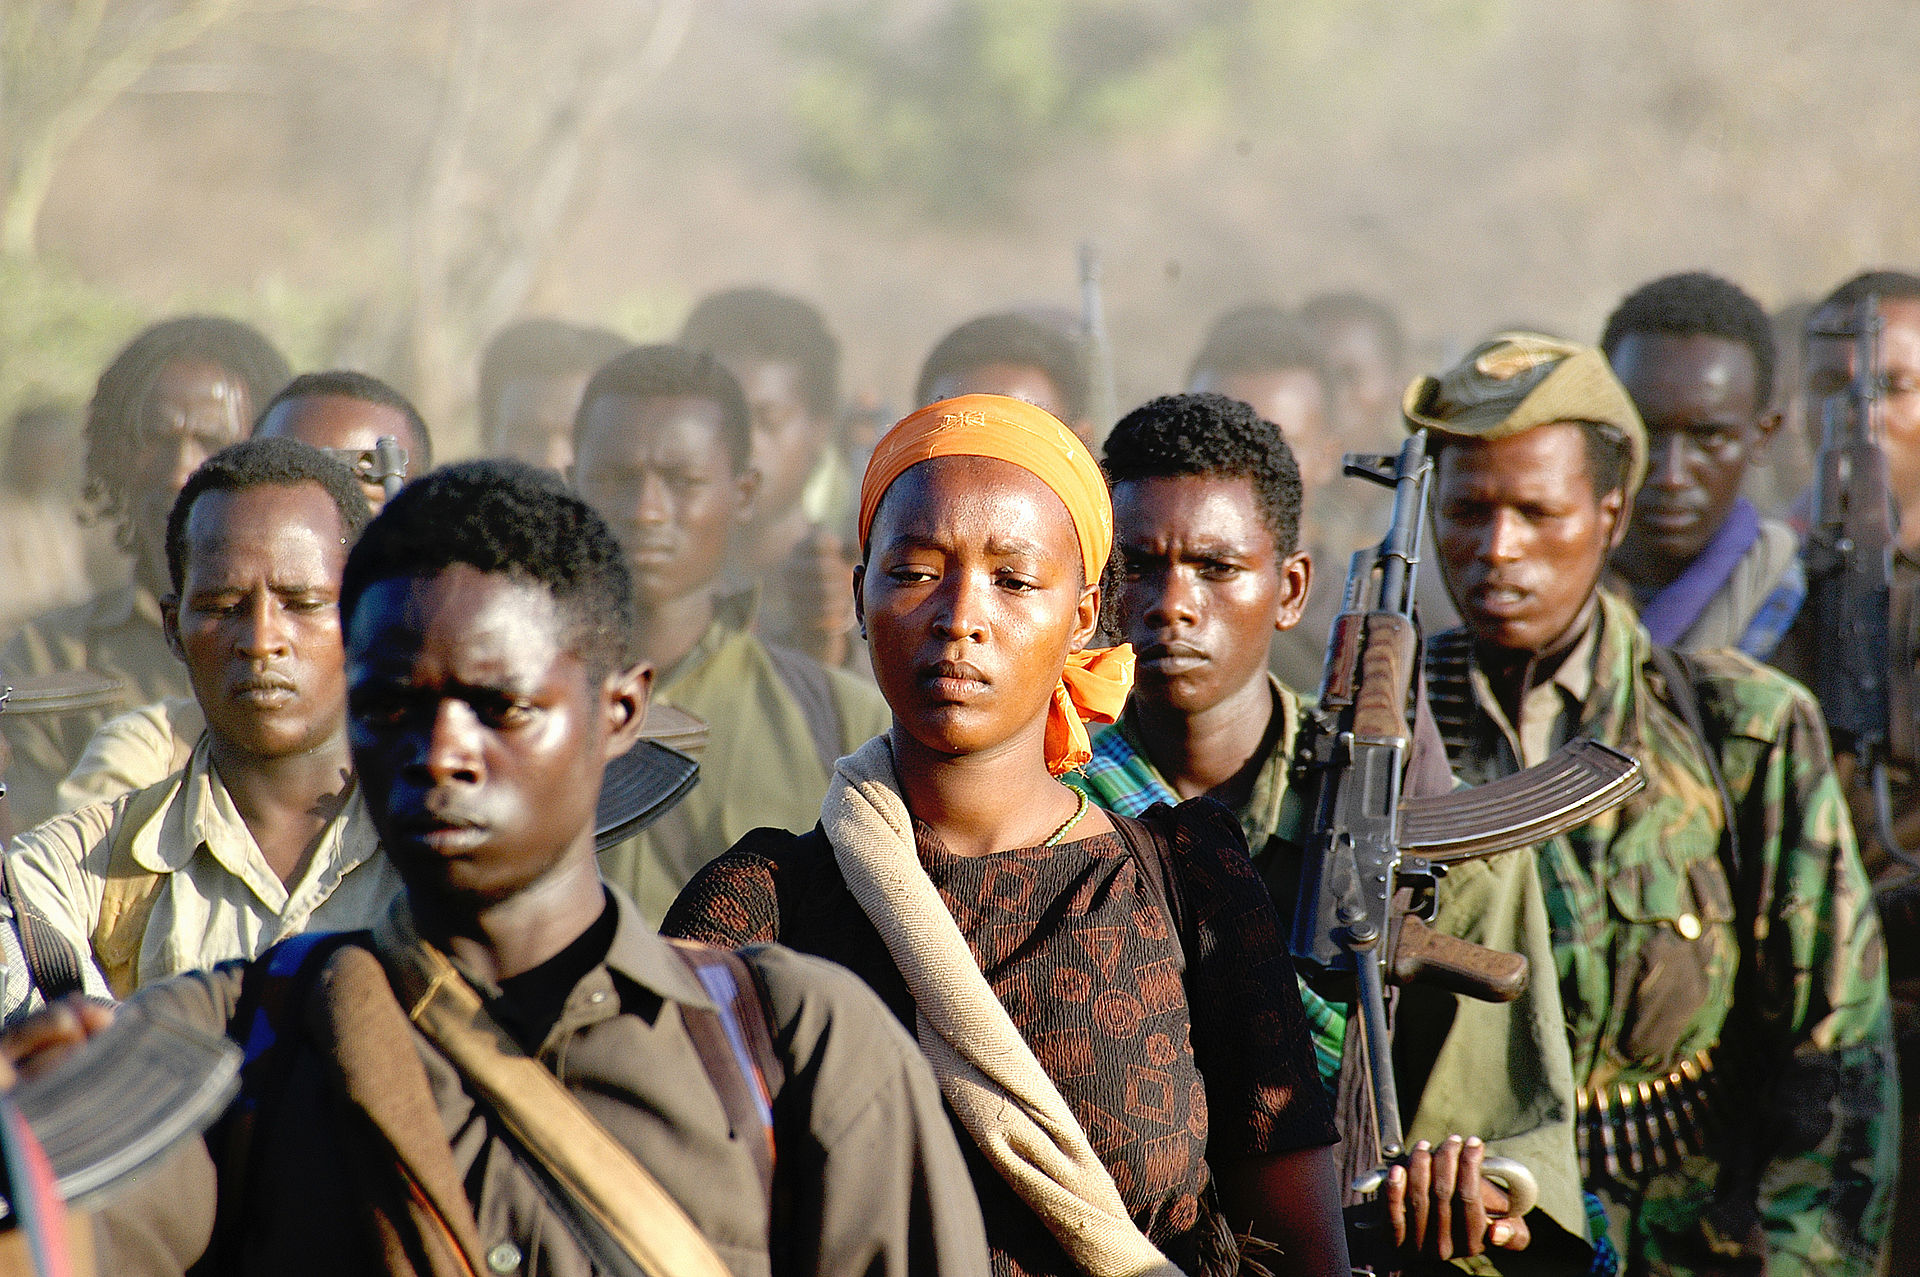 https://upload.wikimedia.org/wikipedia/commons/thumb/b/b6/002_Oromo_Liberation_Front_rebels.JPG/1920px-002_Oromo_Liberation_Front_rebels.JPG